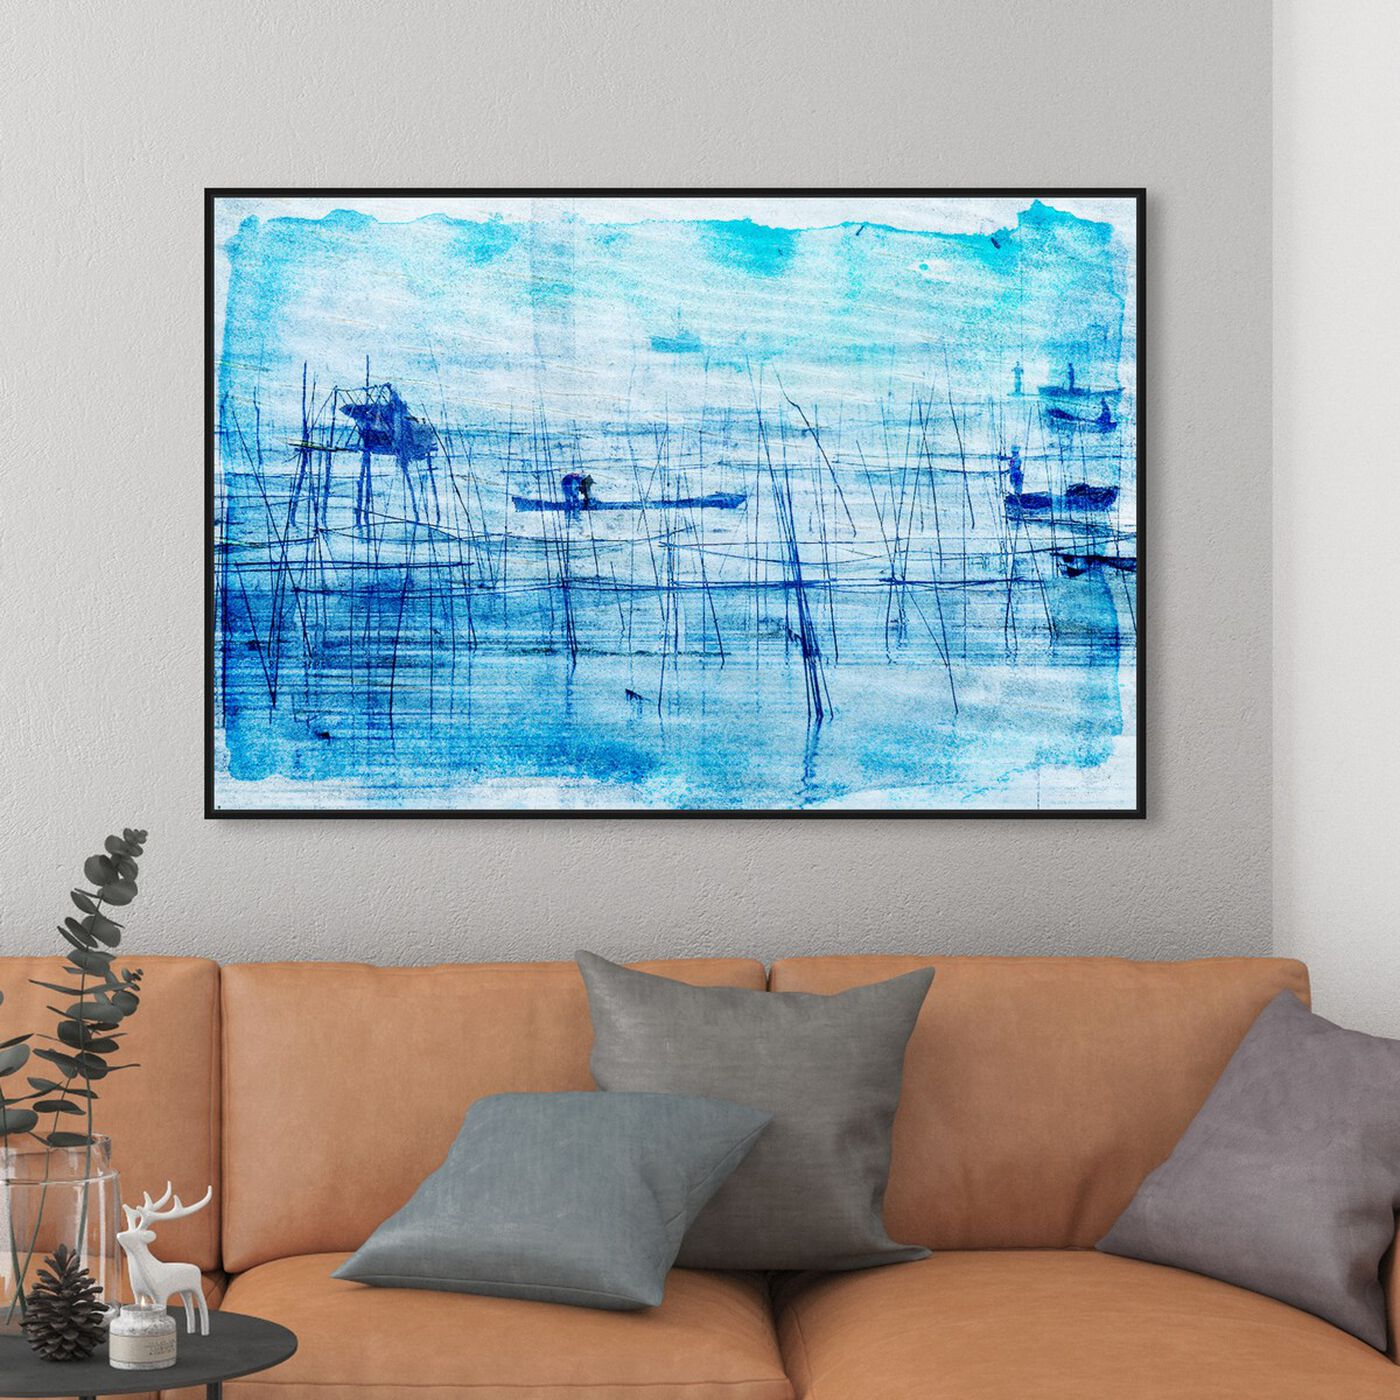 Hanging view of Rao River featuring abstract and paint art.